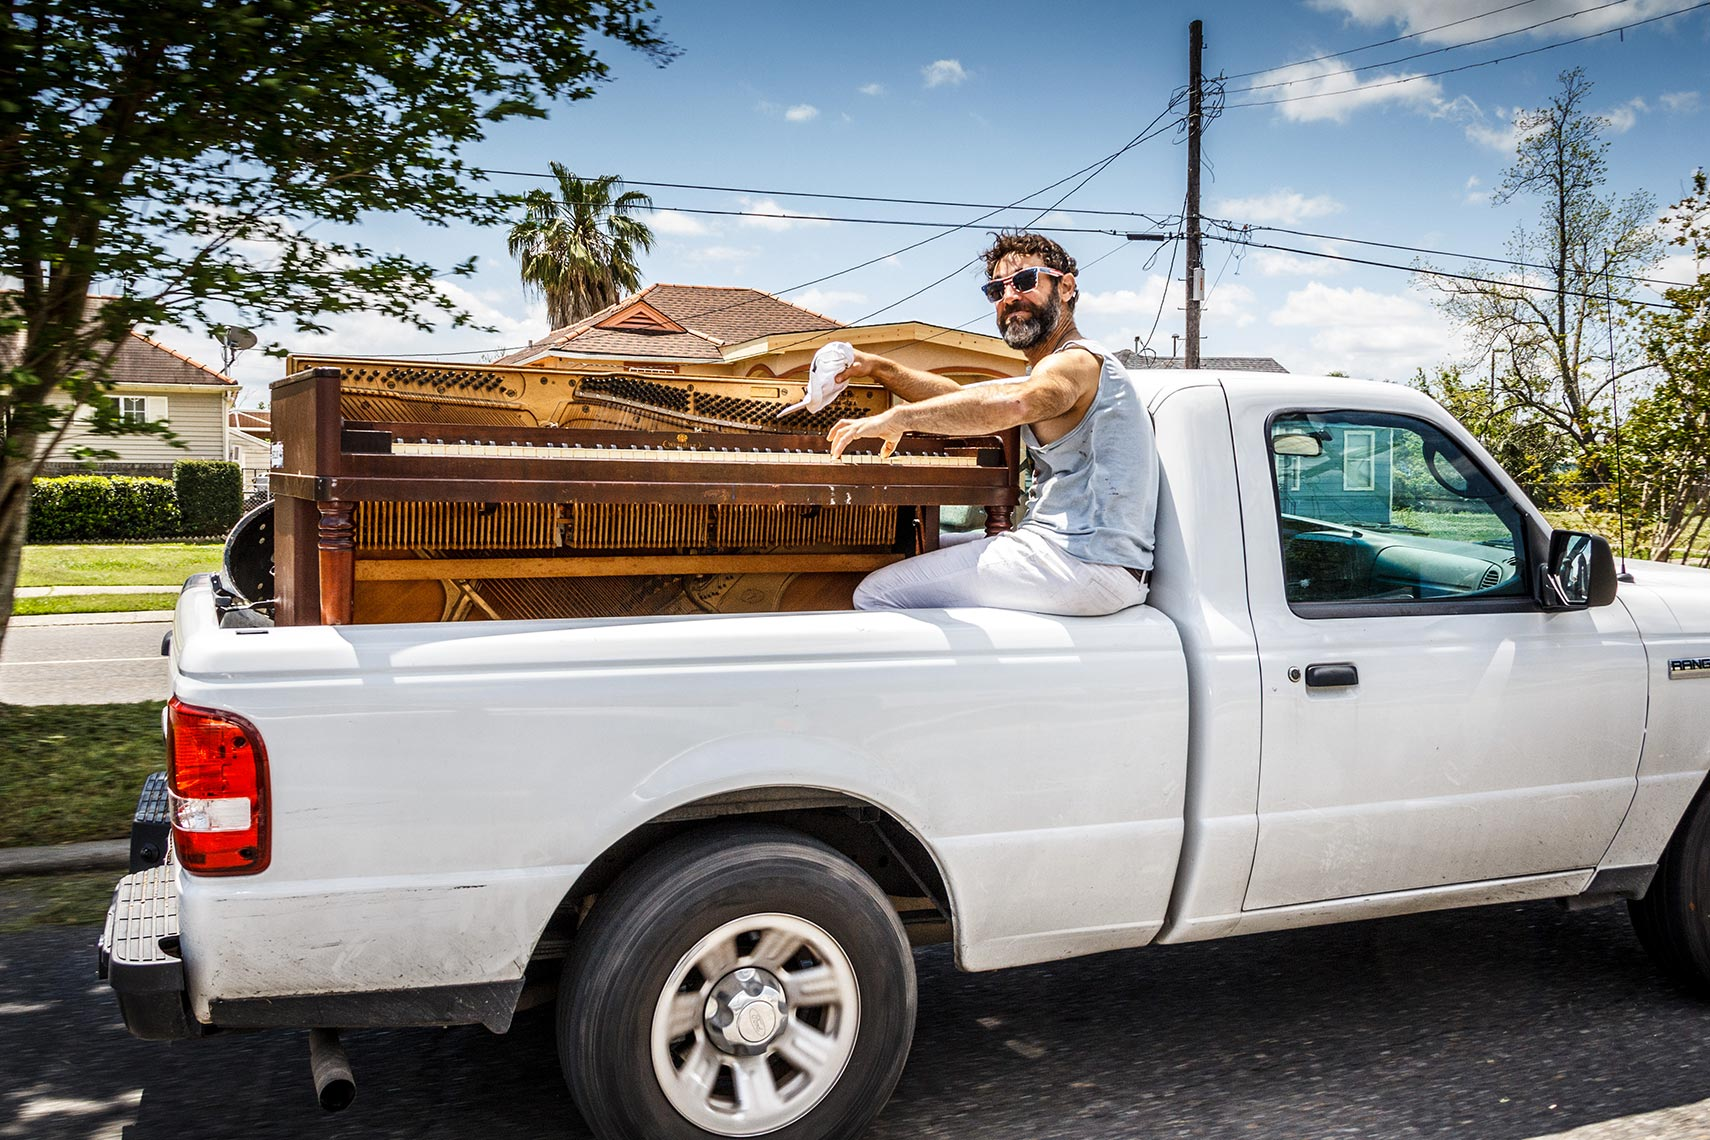 Piano & Player In Truck Bed